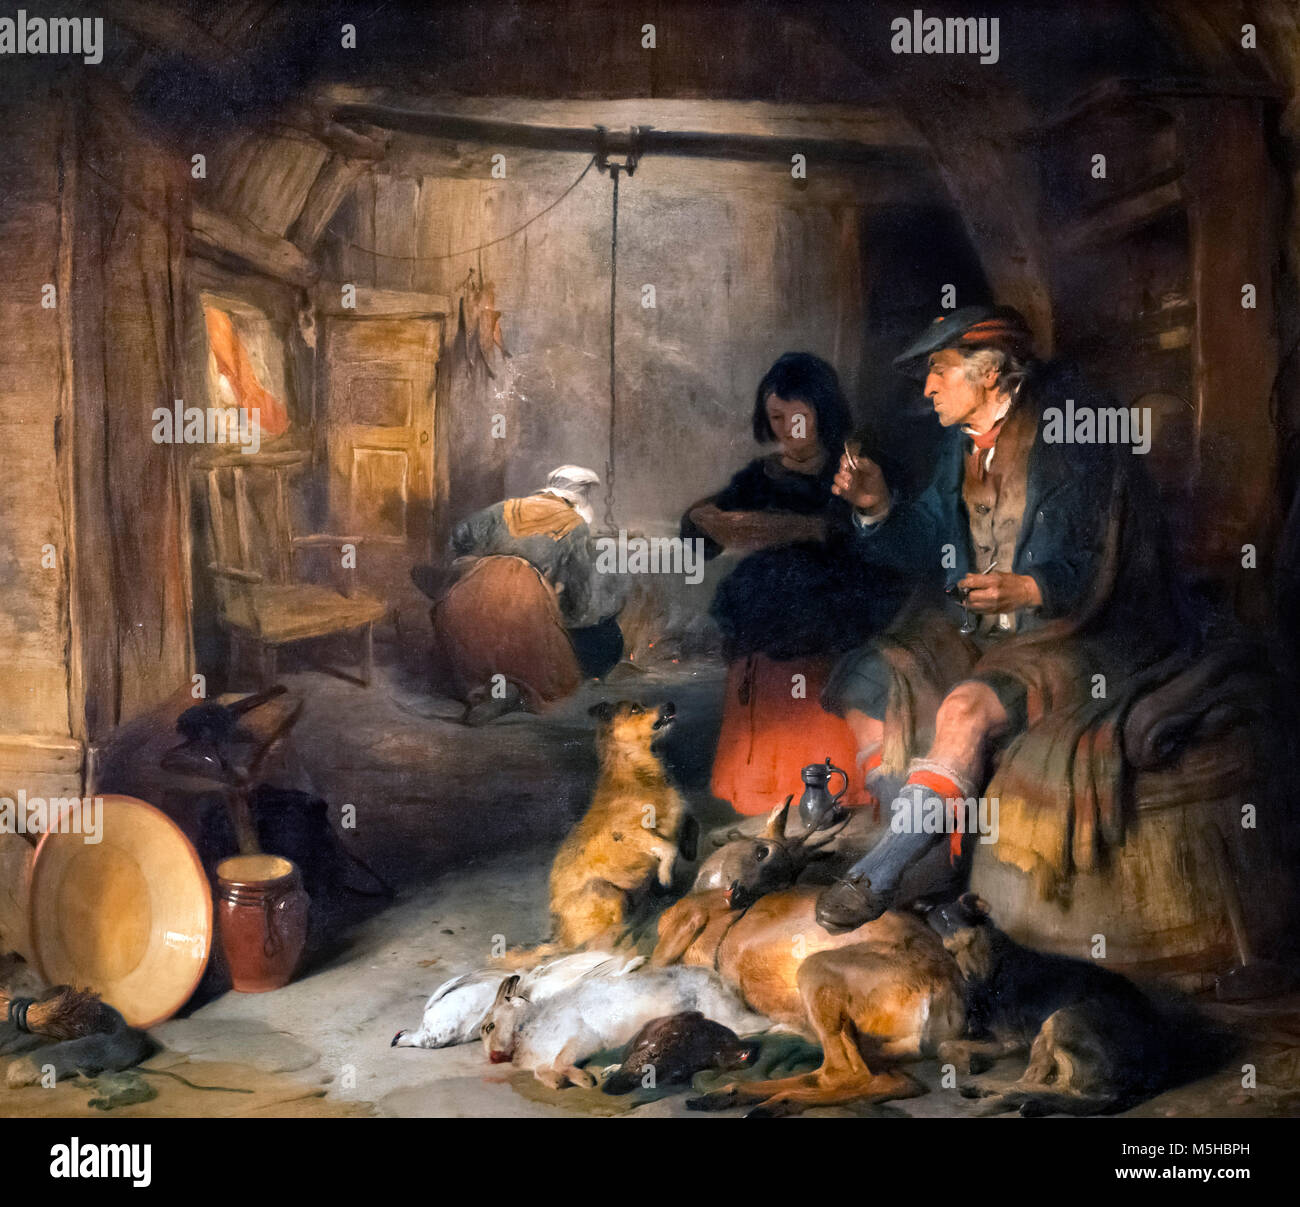 Edwin Landseer. Interior of a Highlander's House by Sir Edwin Henry Landseer (1802-1873), oil on board, c.1831 - Stock Image